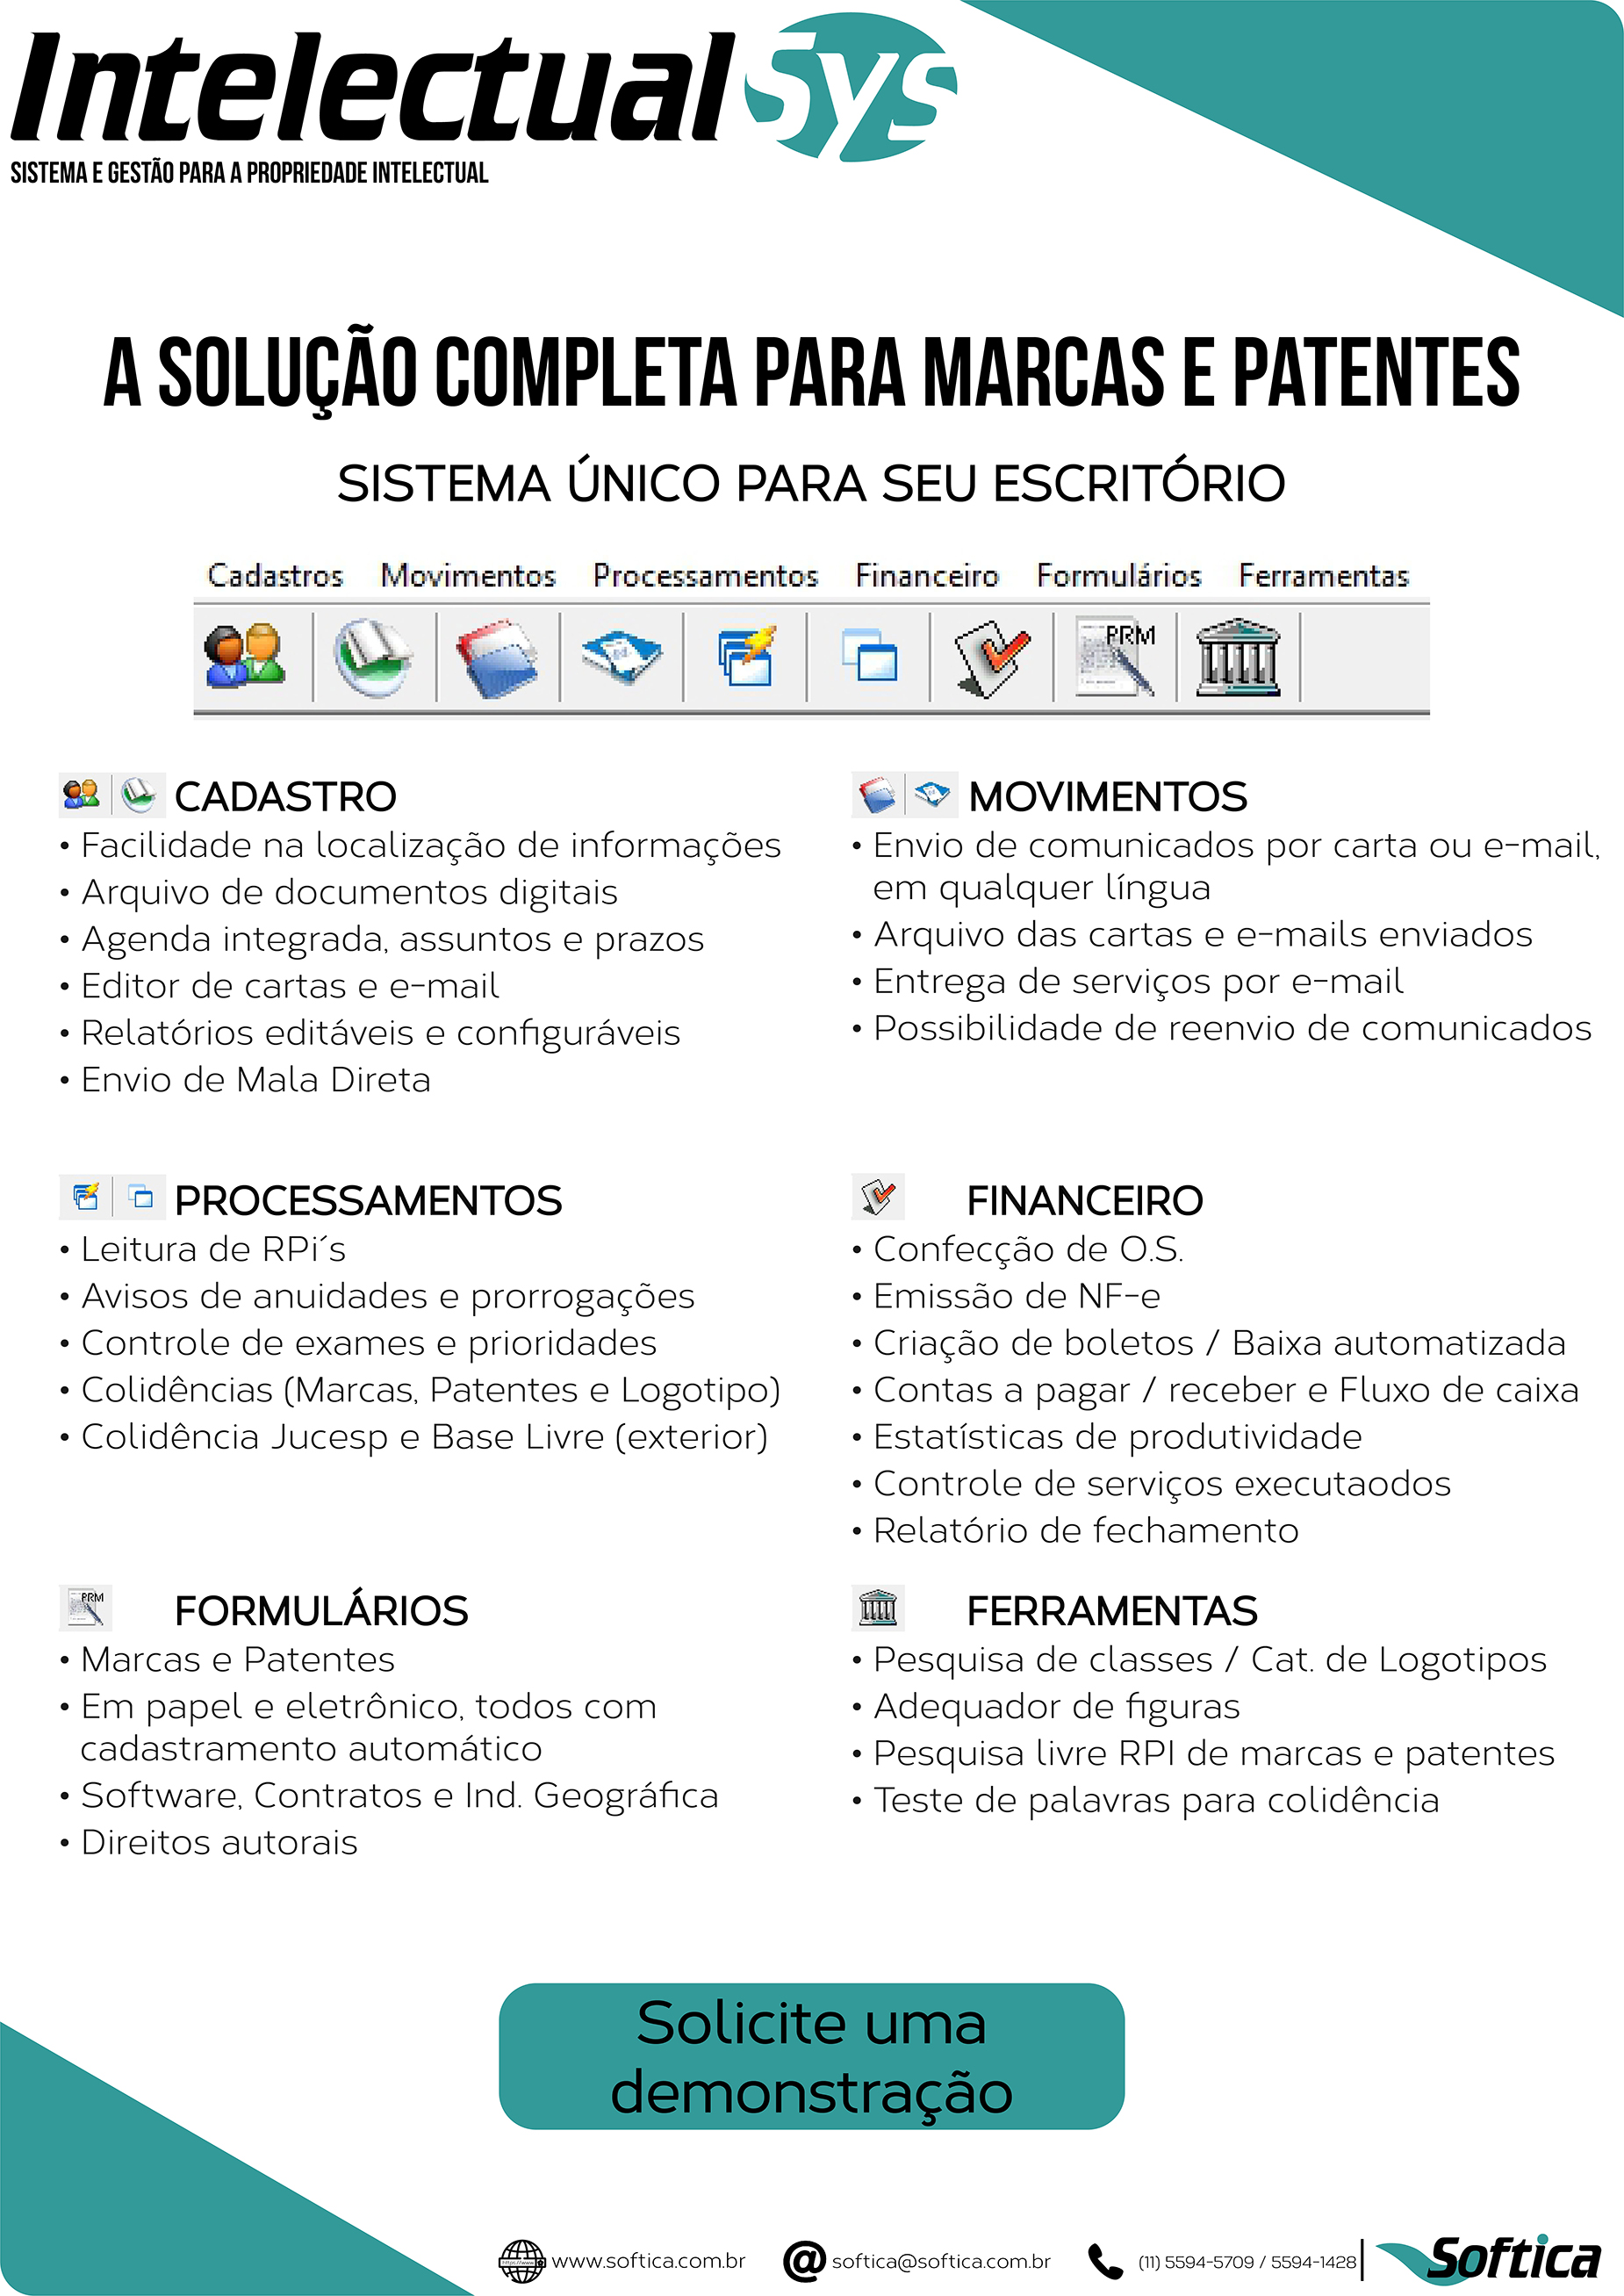 Folder 1 ampliado do IntelectualSys